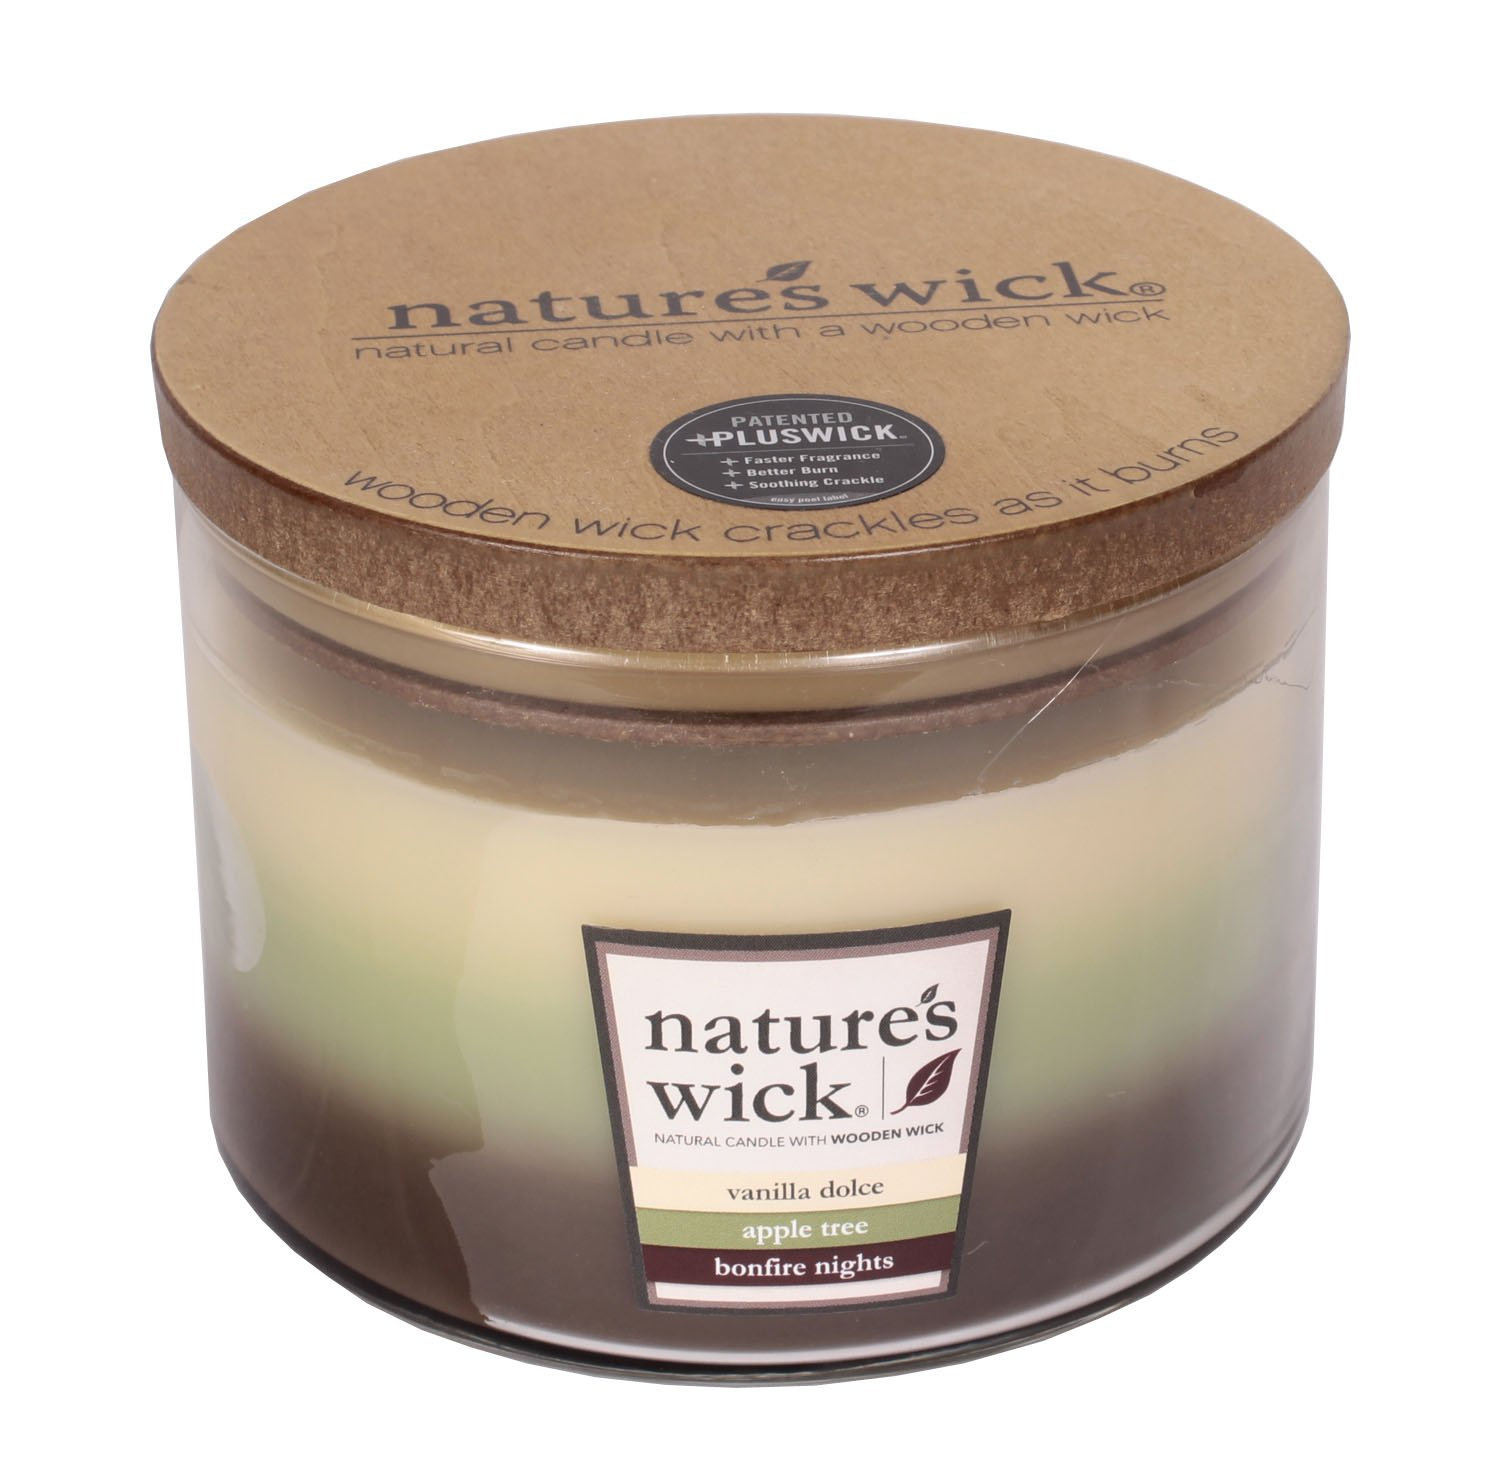 Nature's Wick Vanilla Dolce/Apple Tree/Bonfire Nights (18 oz)